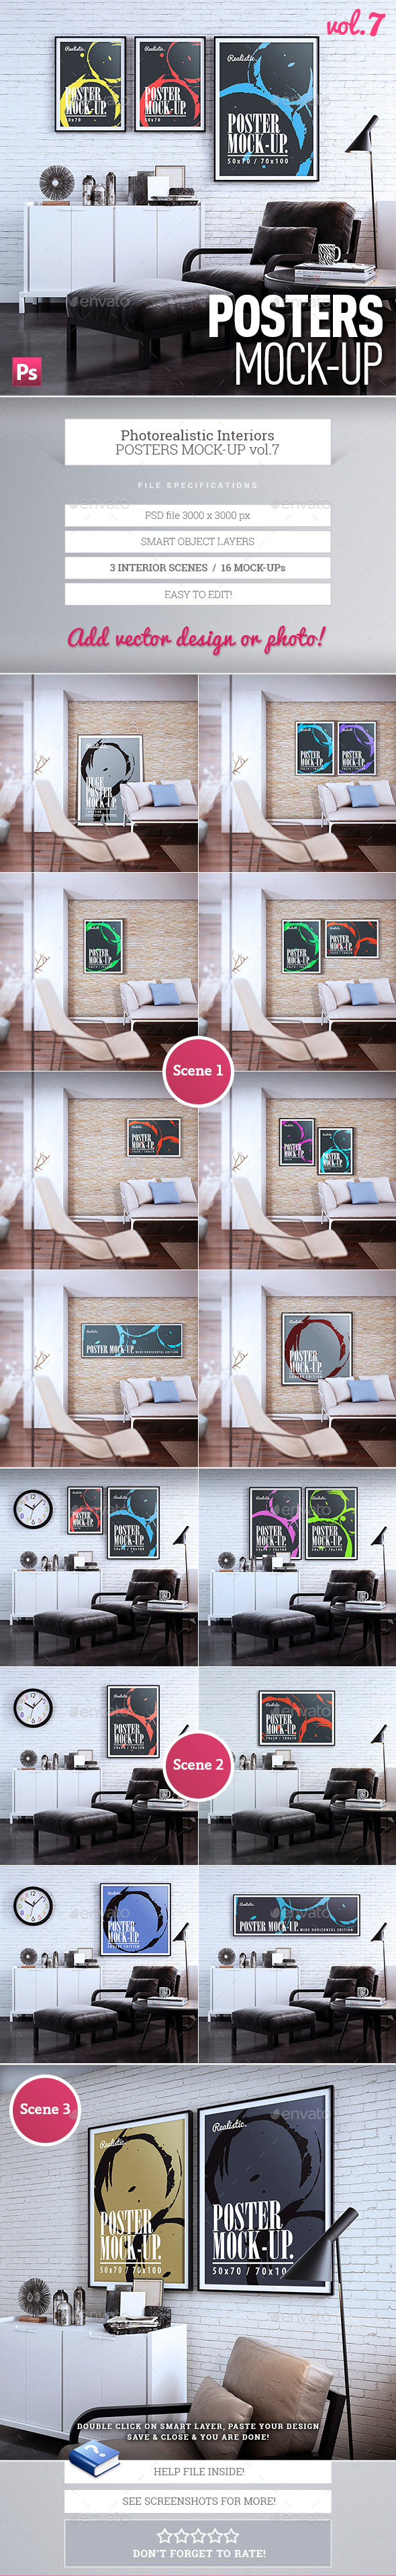 GraphicRiver Posters Mock-Up vol.7 9905411